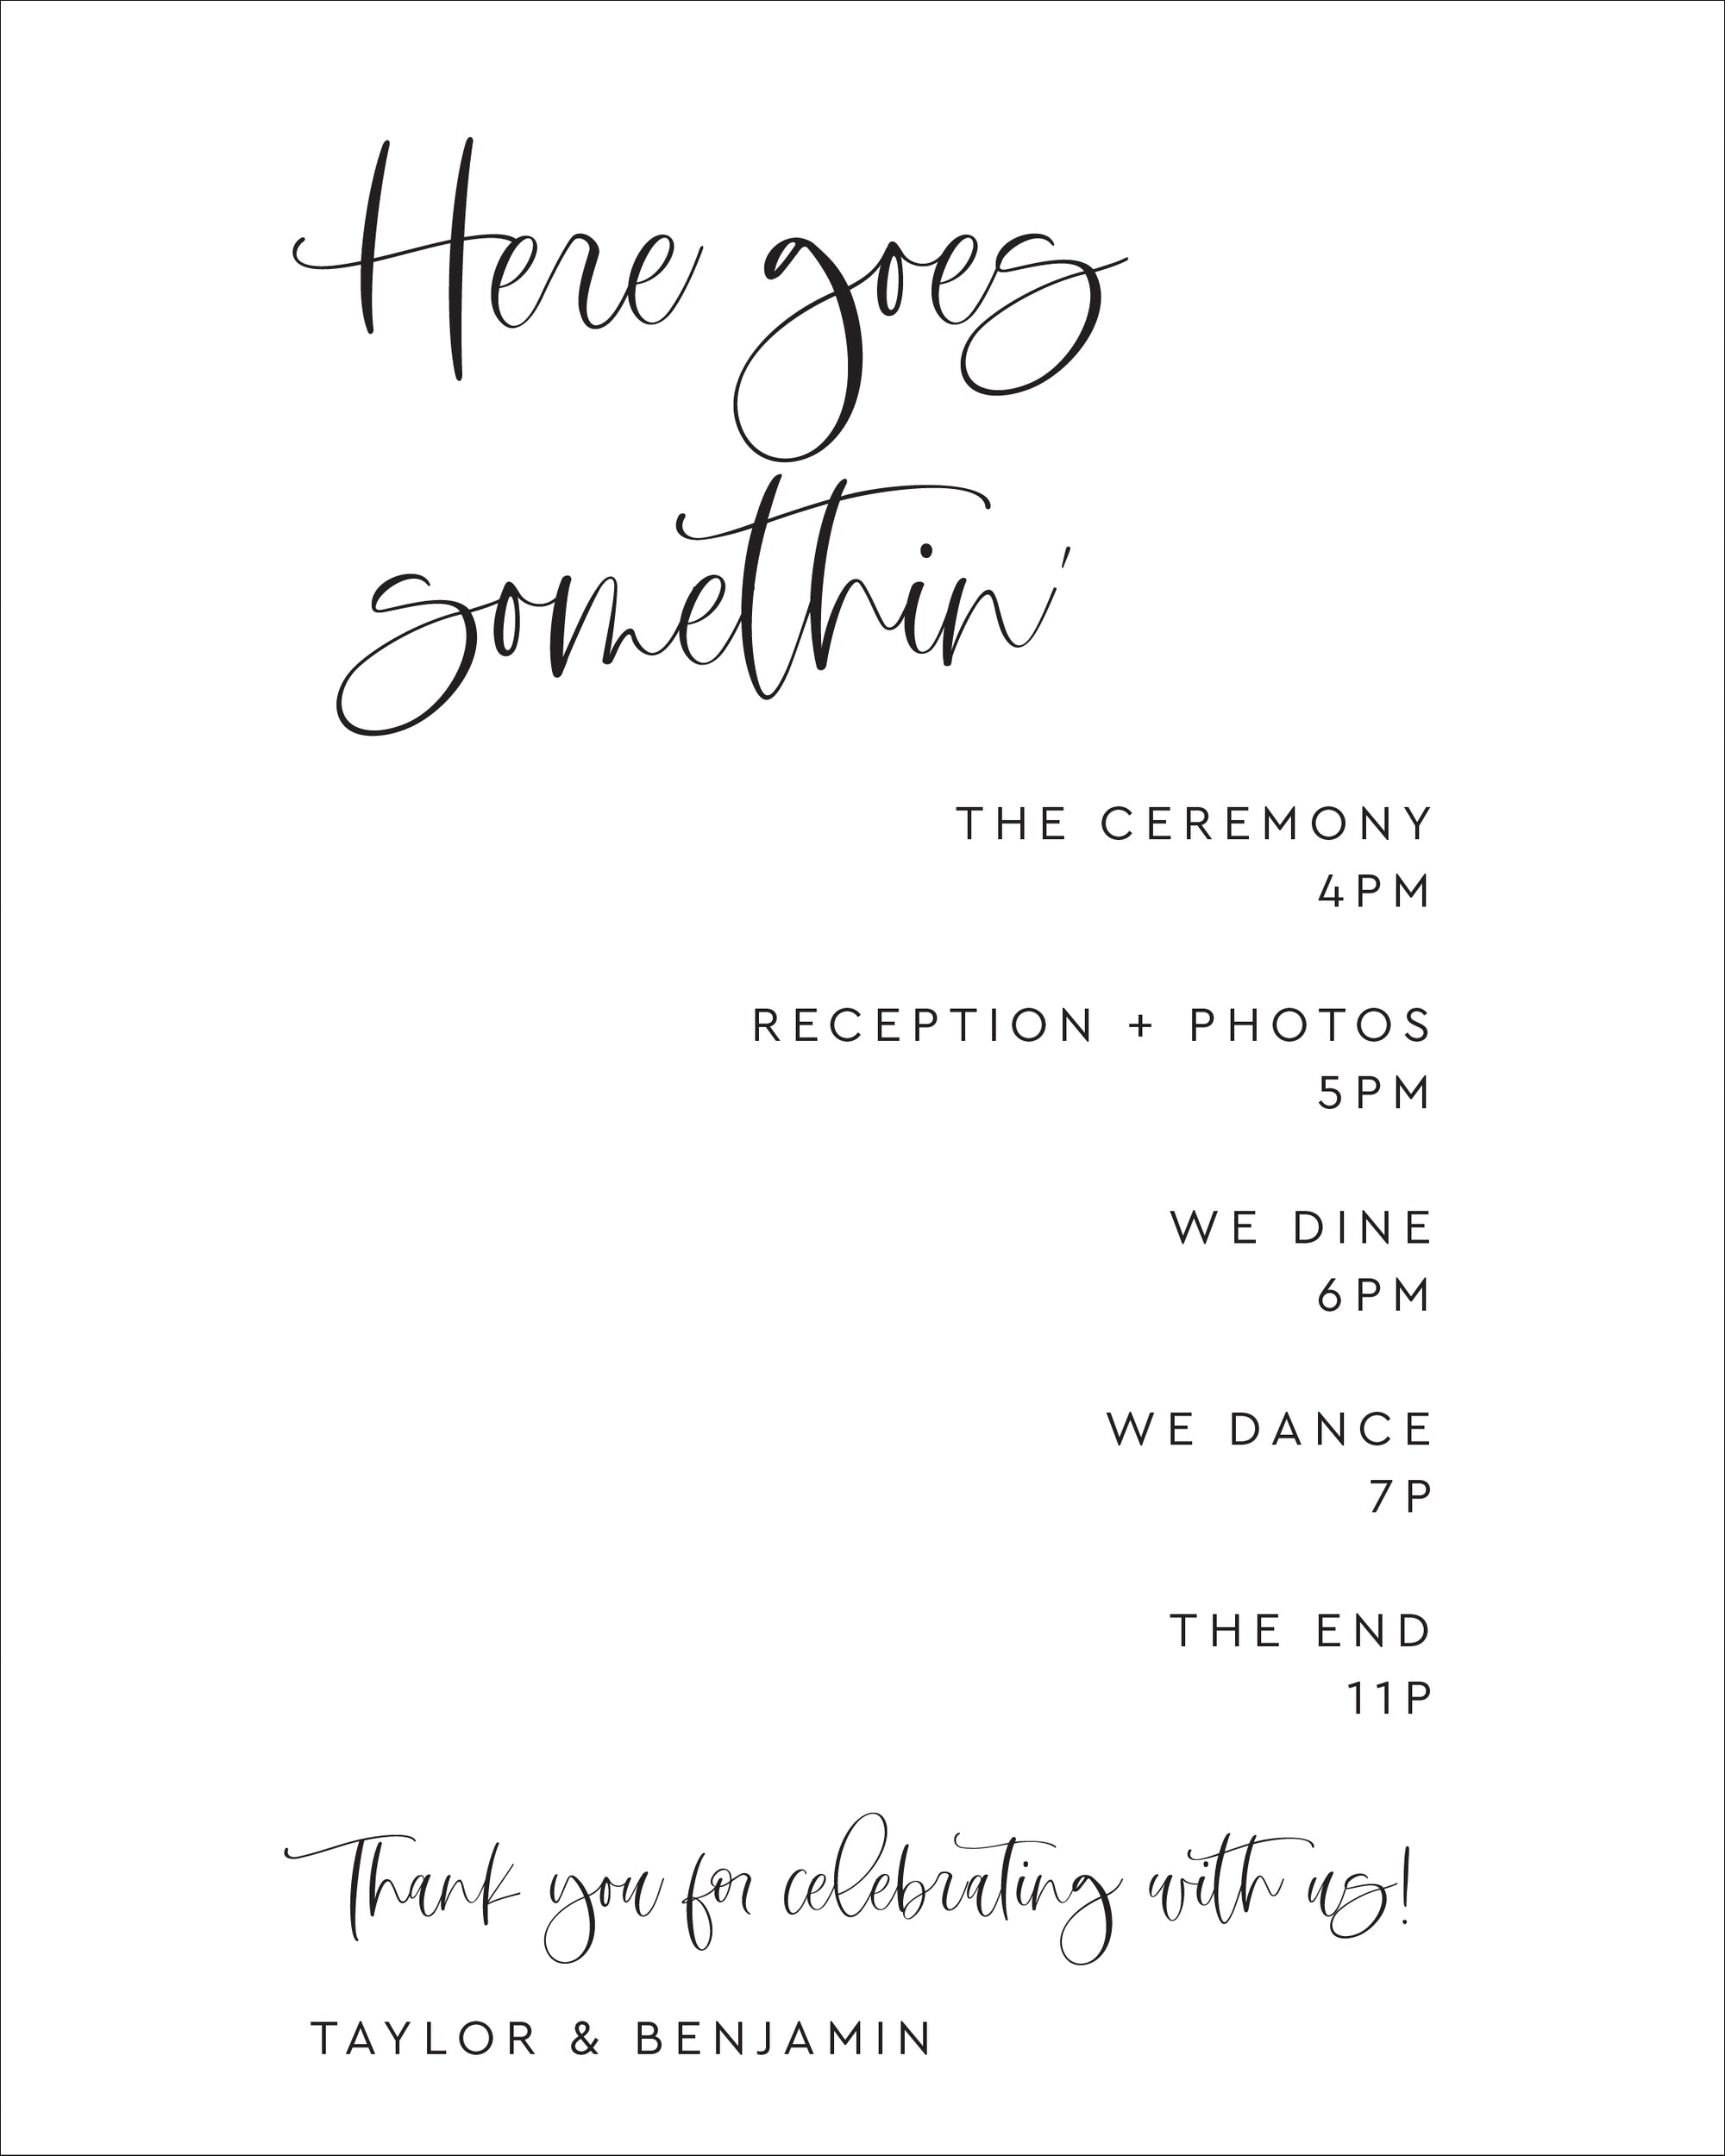 Modern Order Of Events Wedding Poster | The Taylor